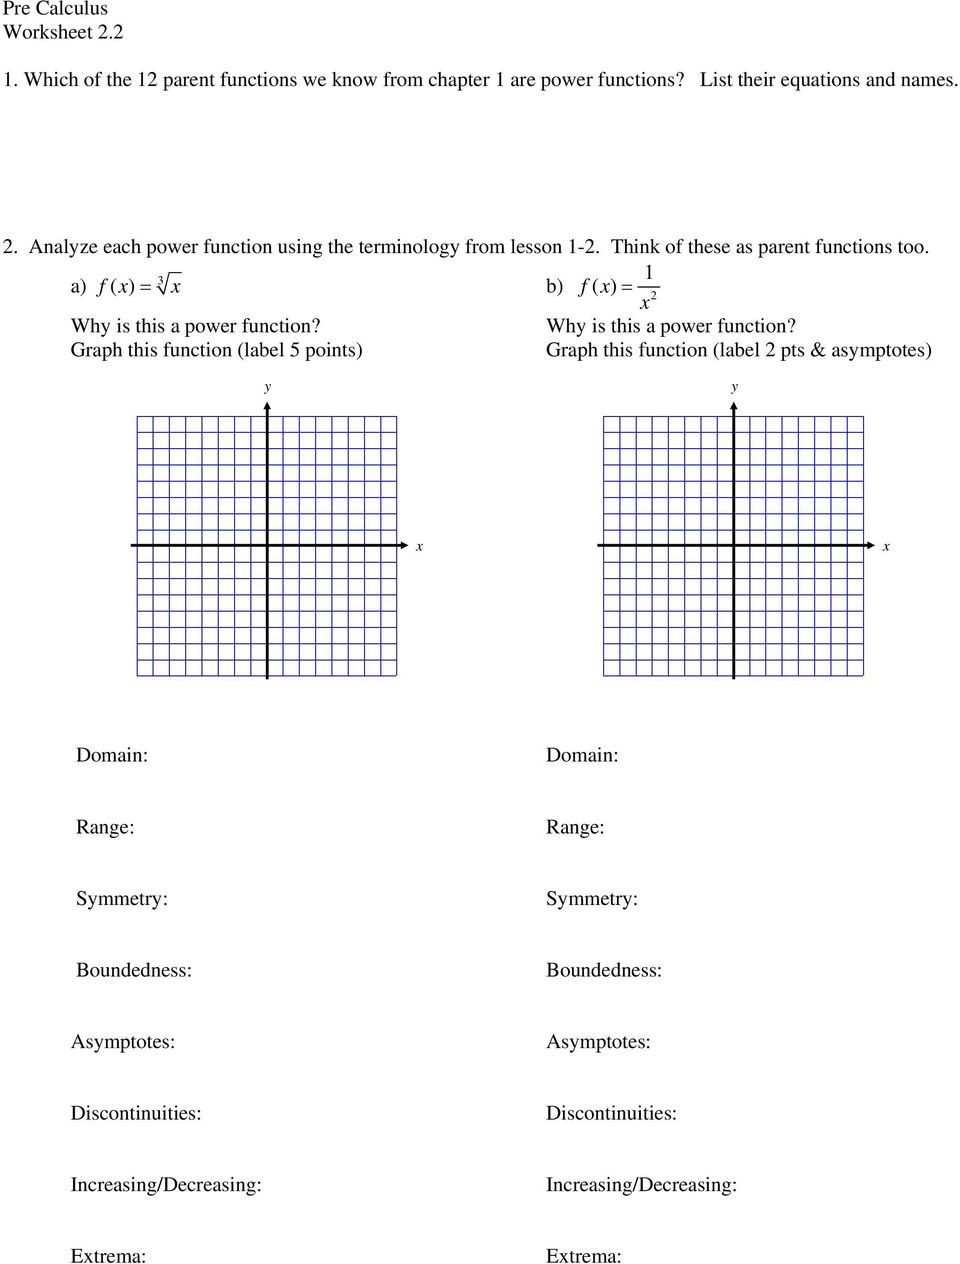 Parent Function Worksheet Answers 1 which Of the 12 Parent Functions We Know From Chapter 1